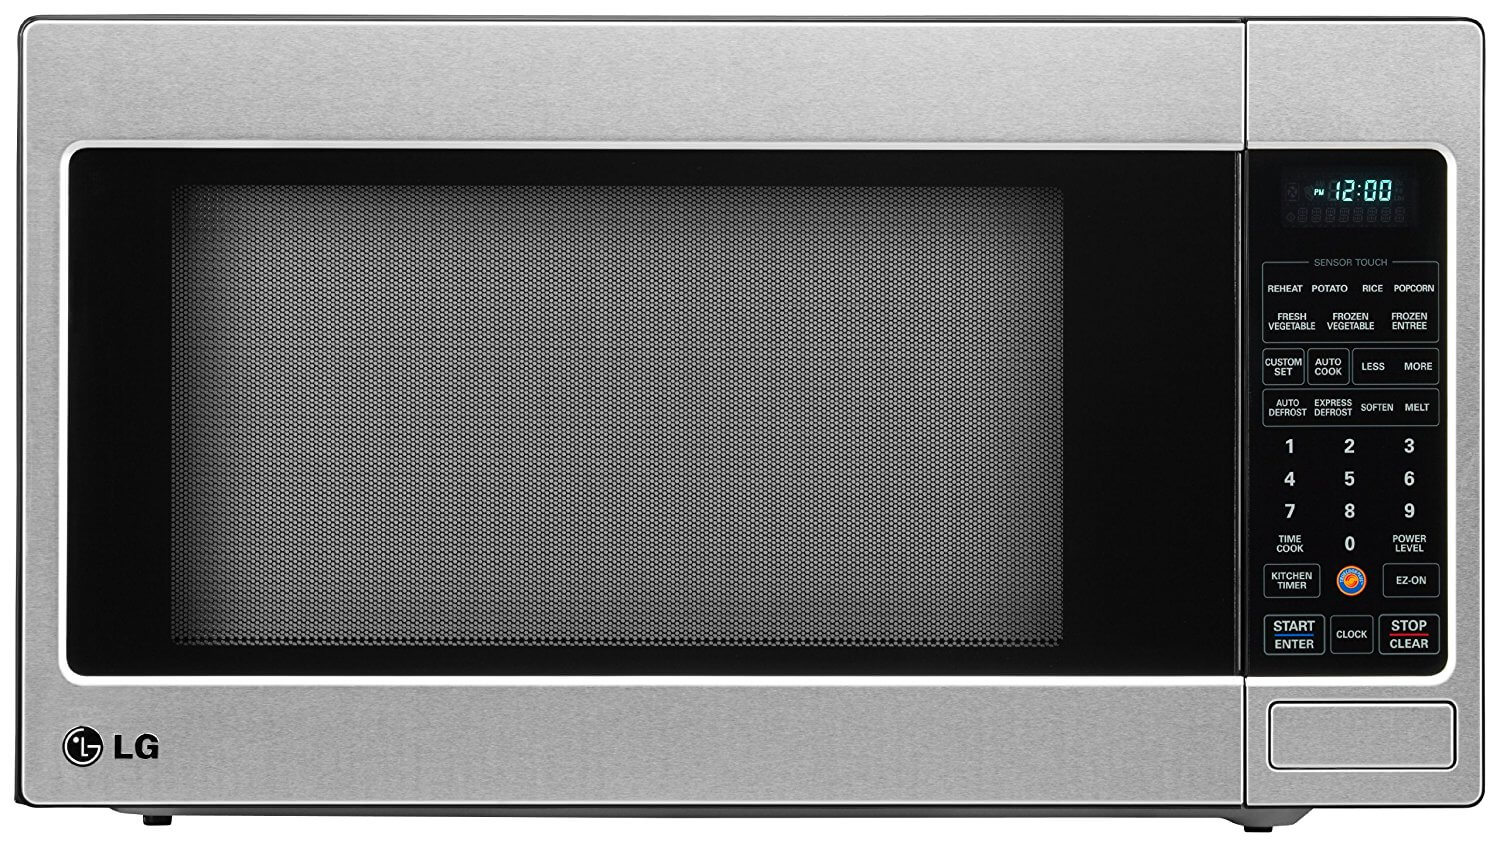 LG LCRT2010ST 2.0 Cu Ft Counter Top Microwave Oven